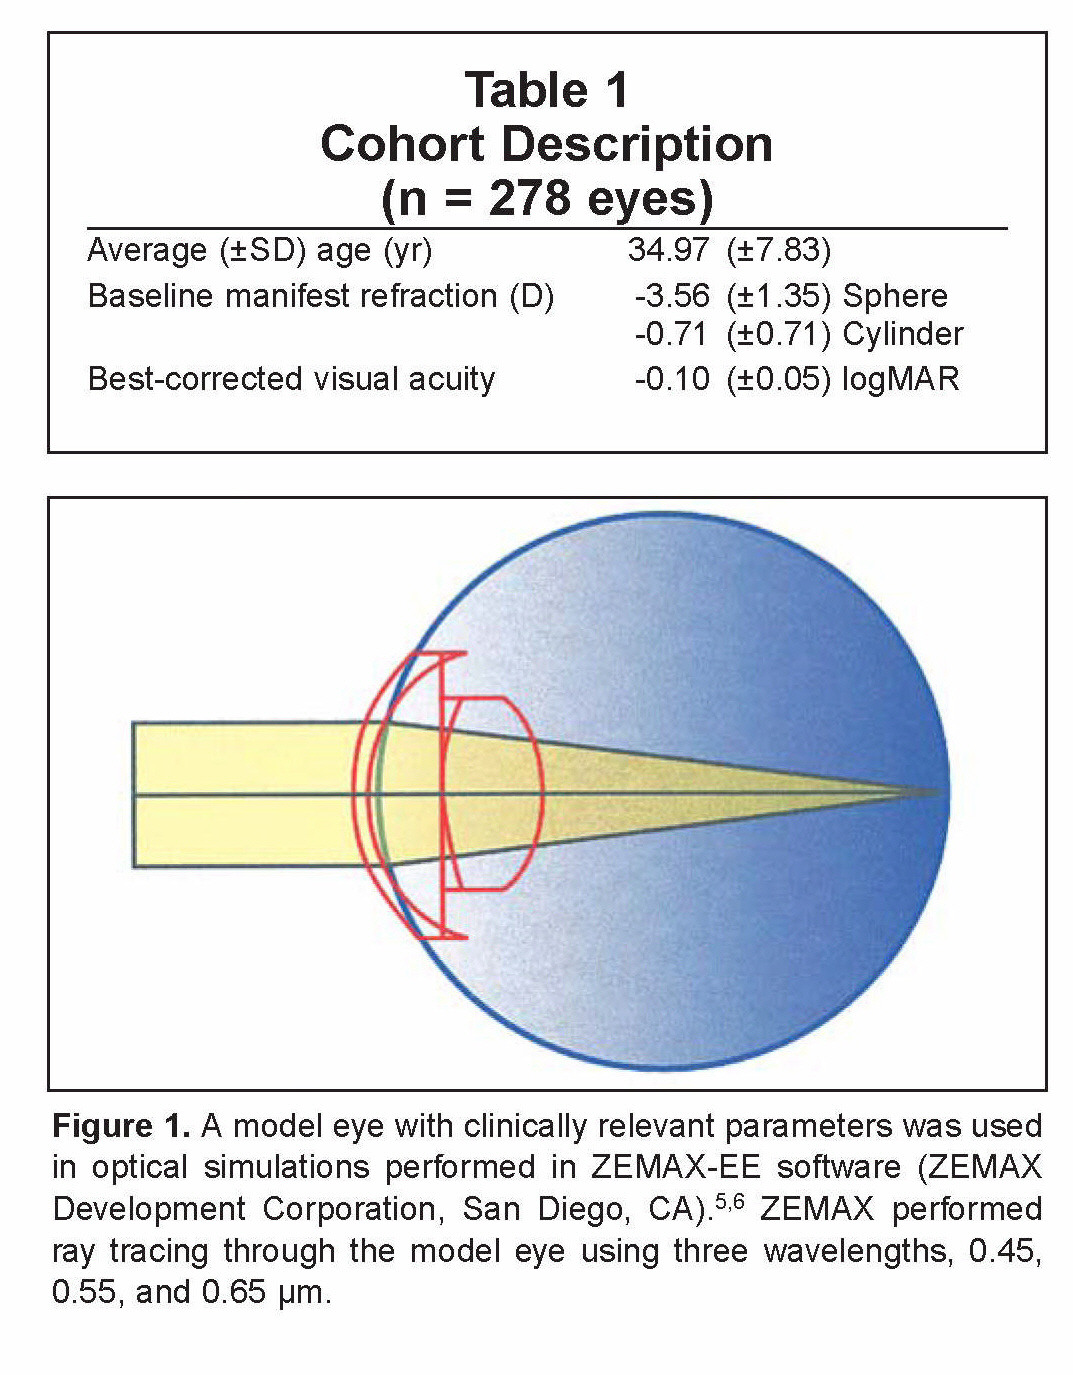 Corneal Asphericity and Retinal Image Quality: A Case Study and